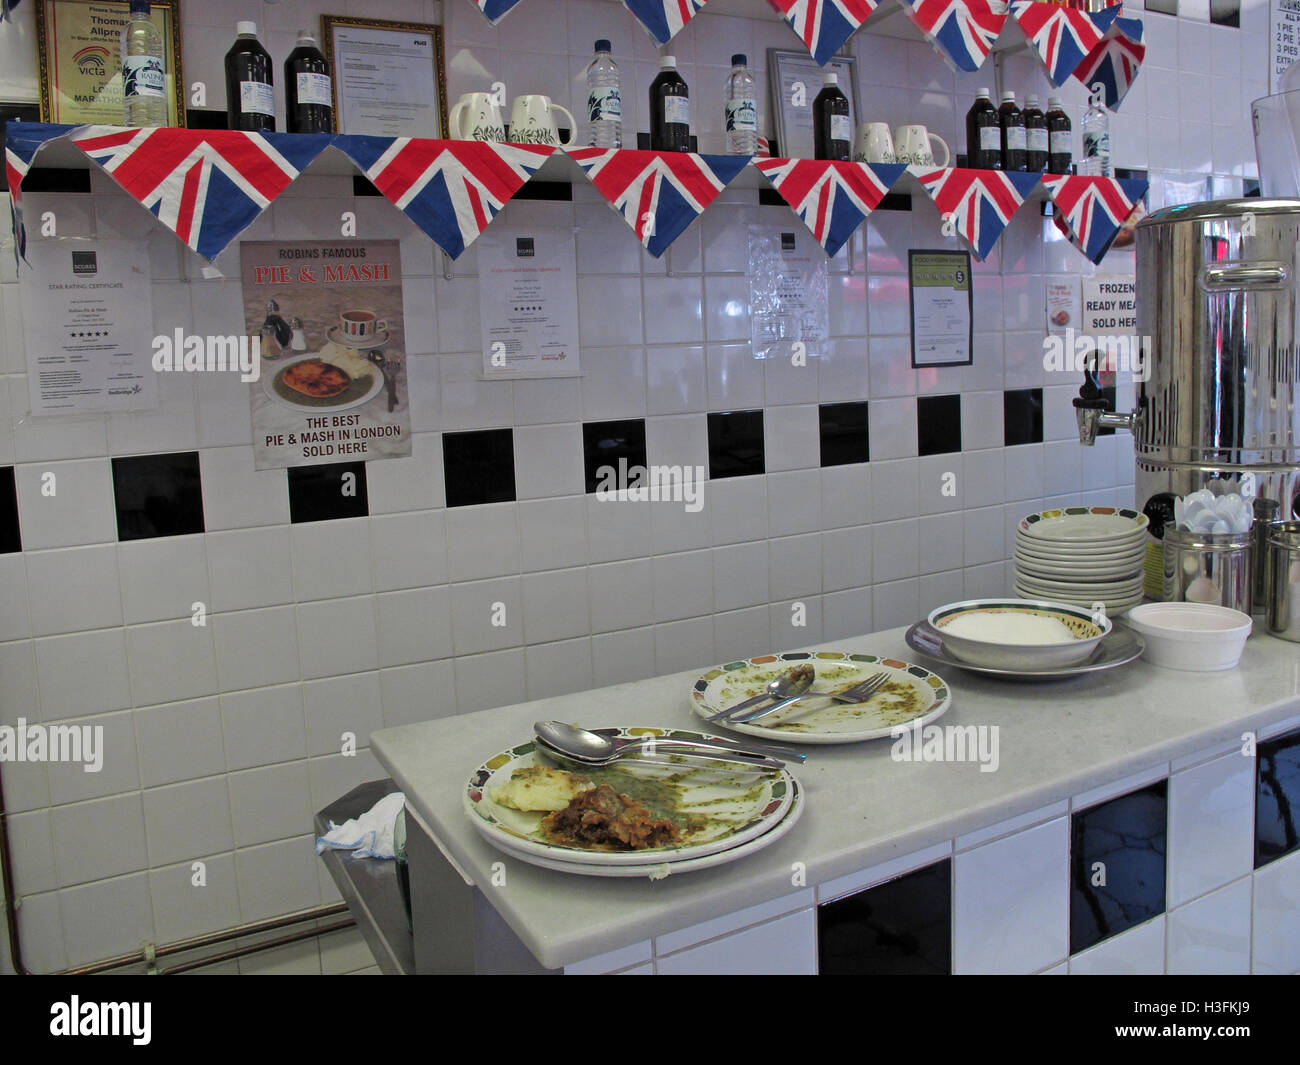 Inside Robins traditional Pie & Mash, Ilford Essex, Greater London, England, dirty plates Stock Photo